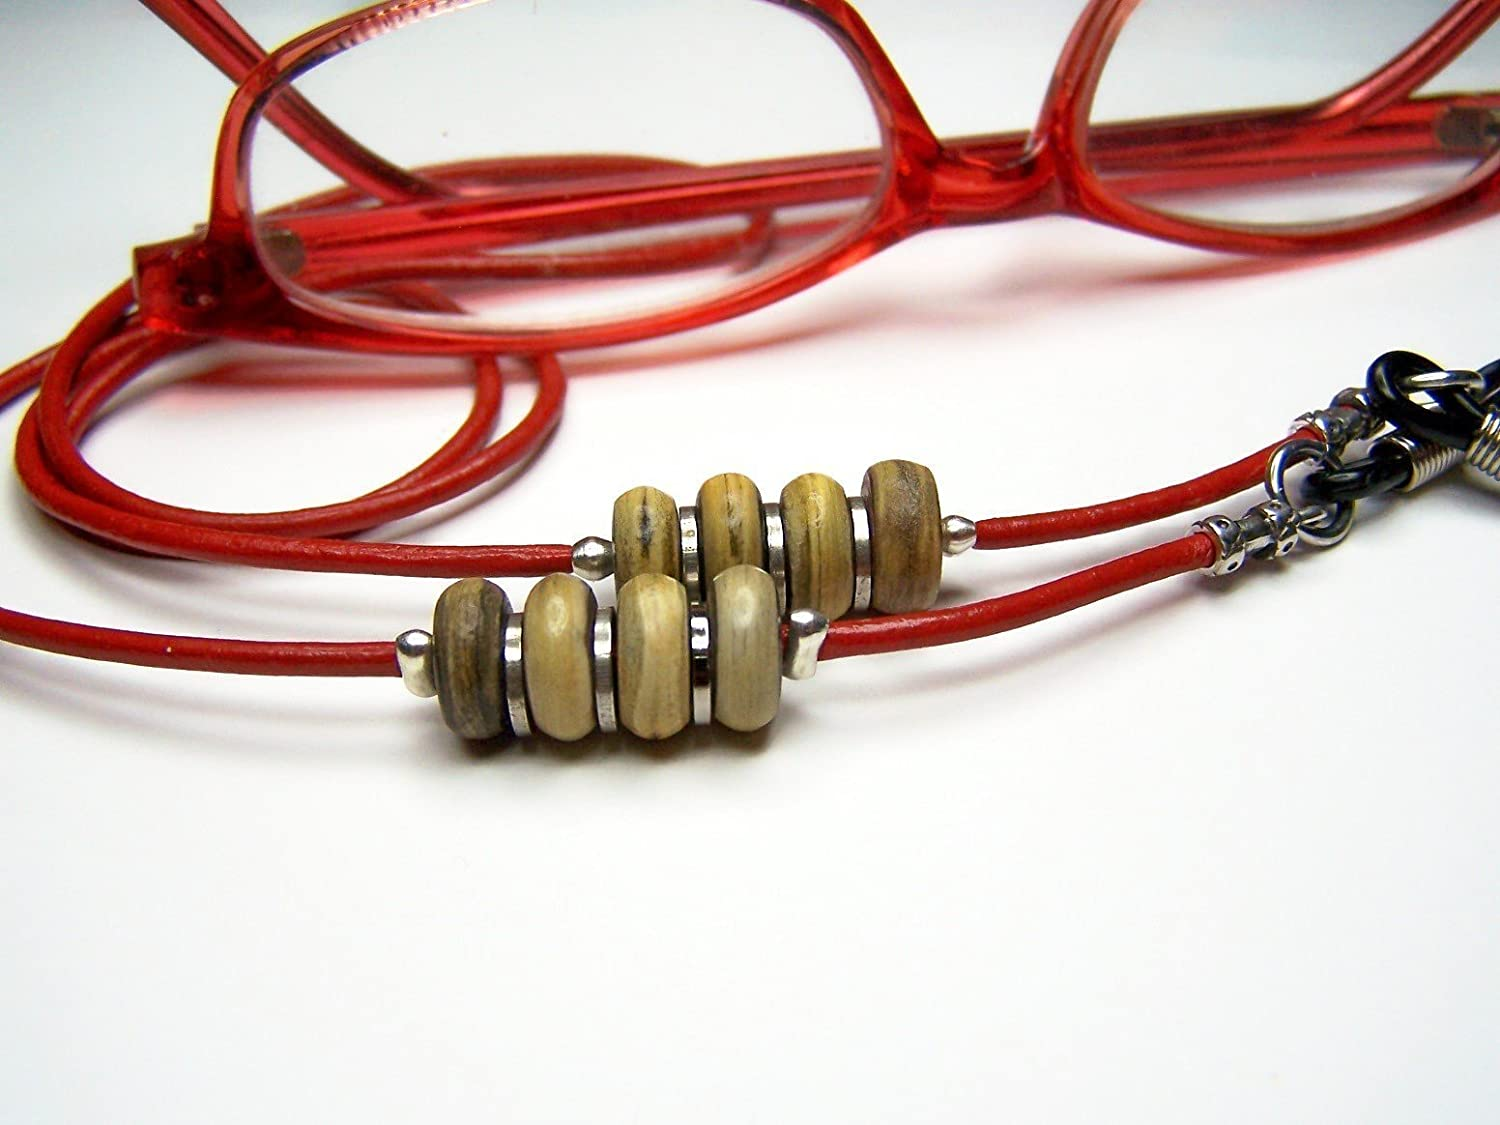 Custom Leather Eyeglass Cord, With Horn Beads, Several Colors, Lengths From 24 - 34